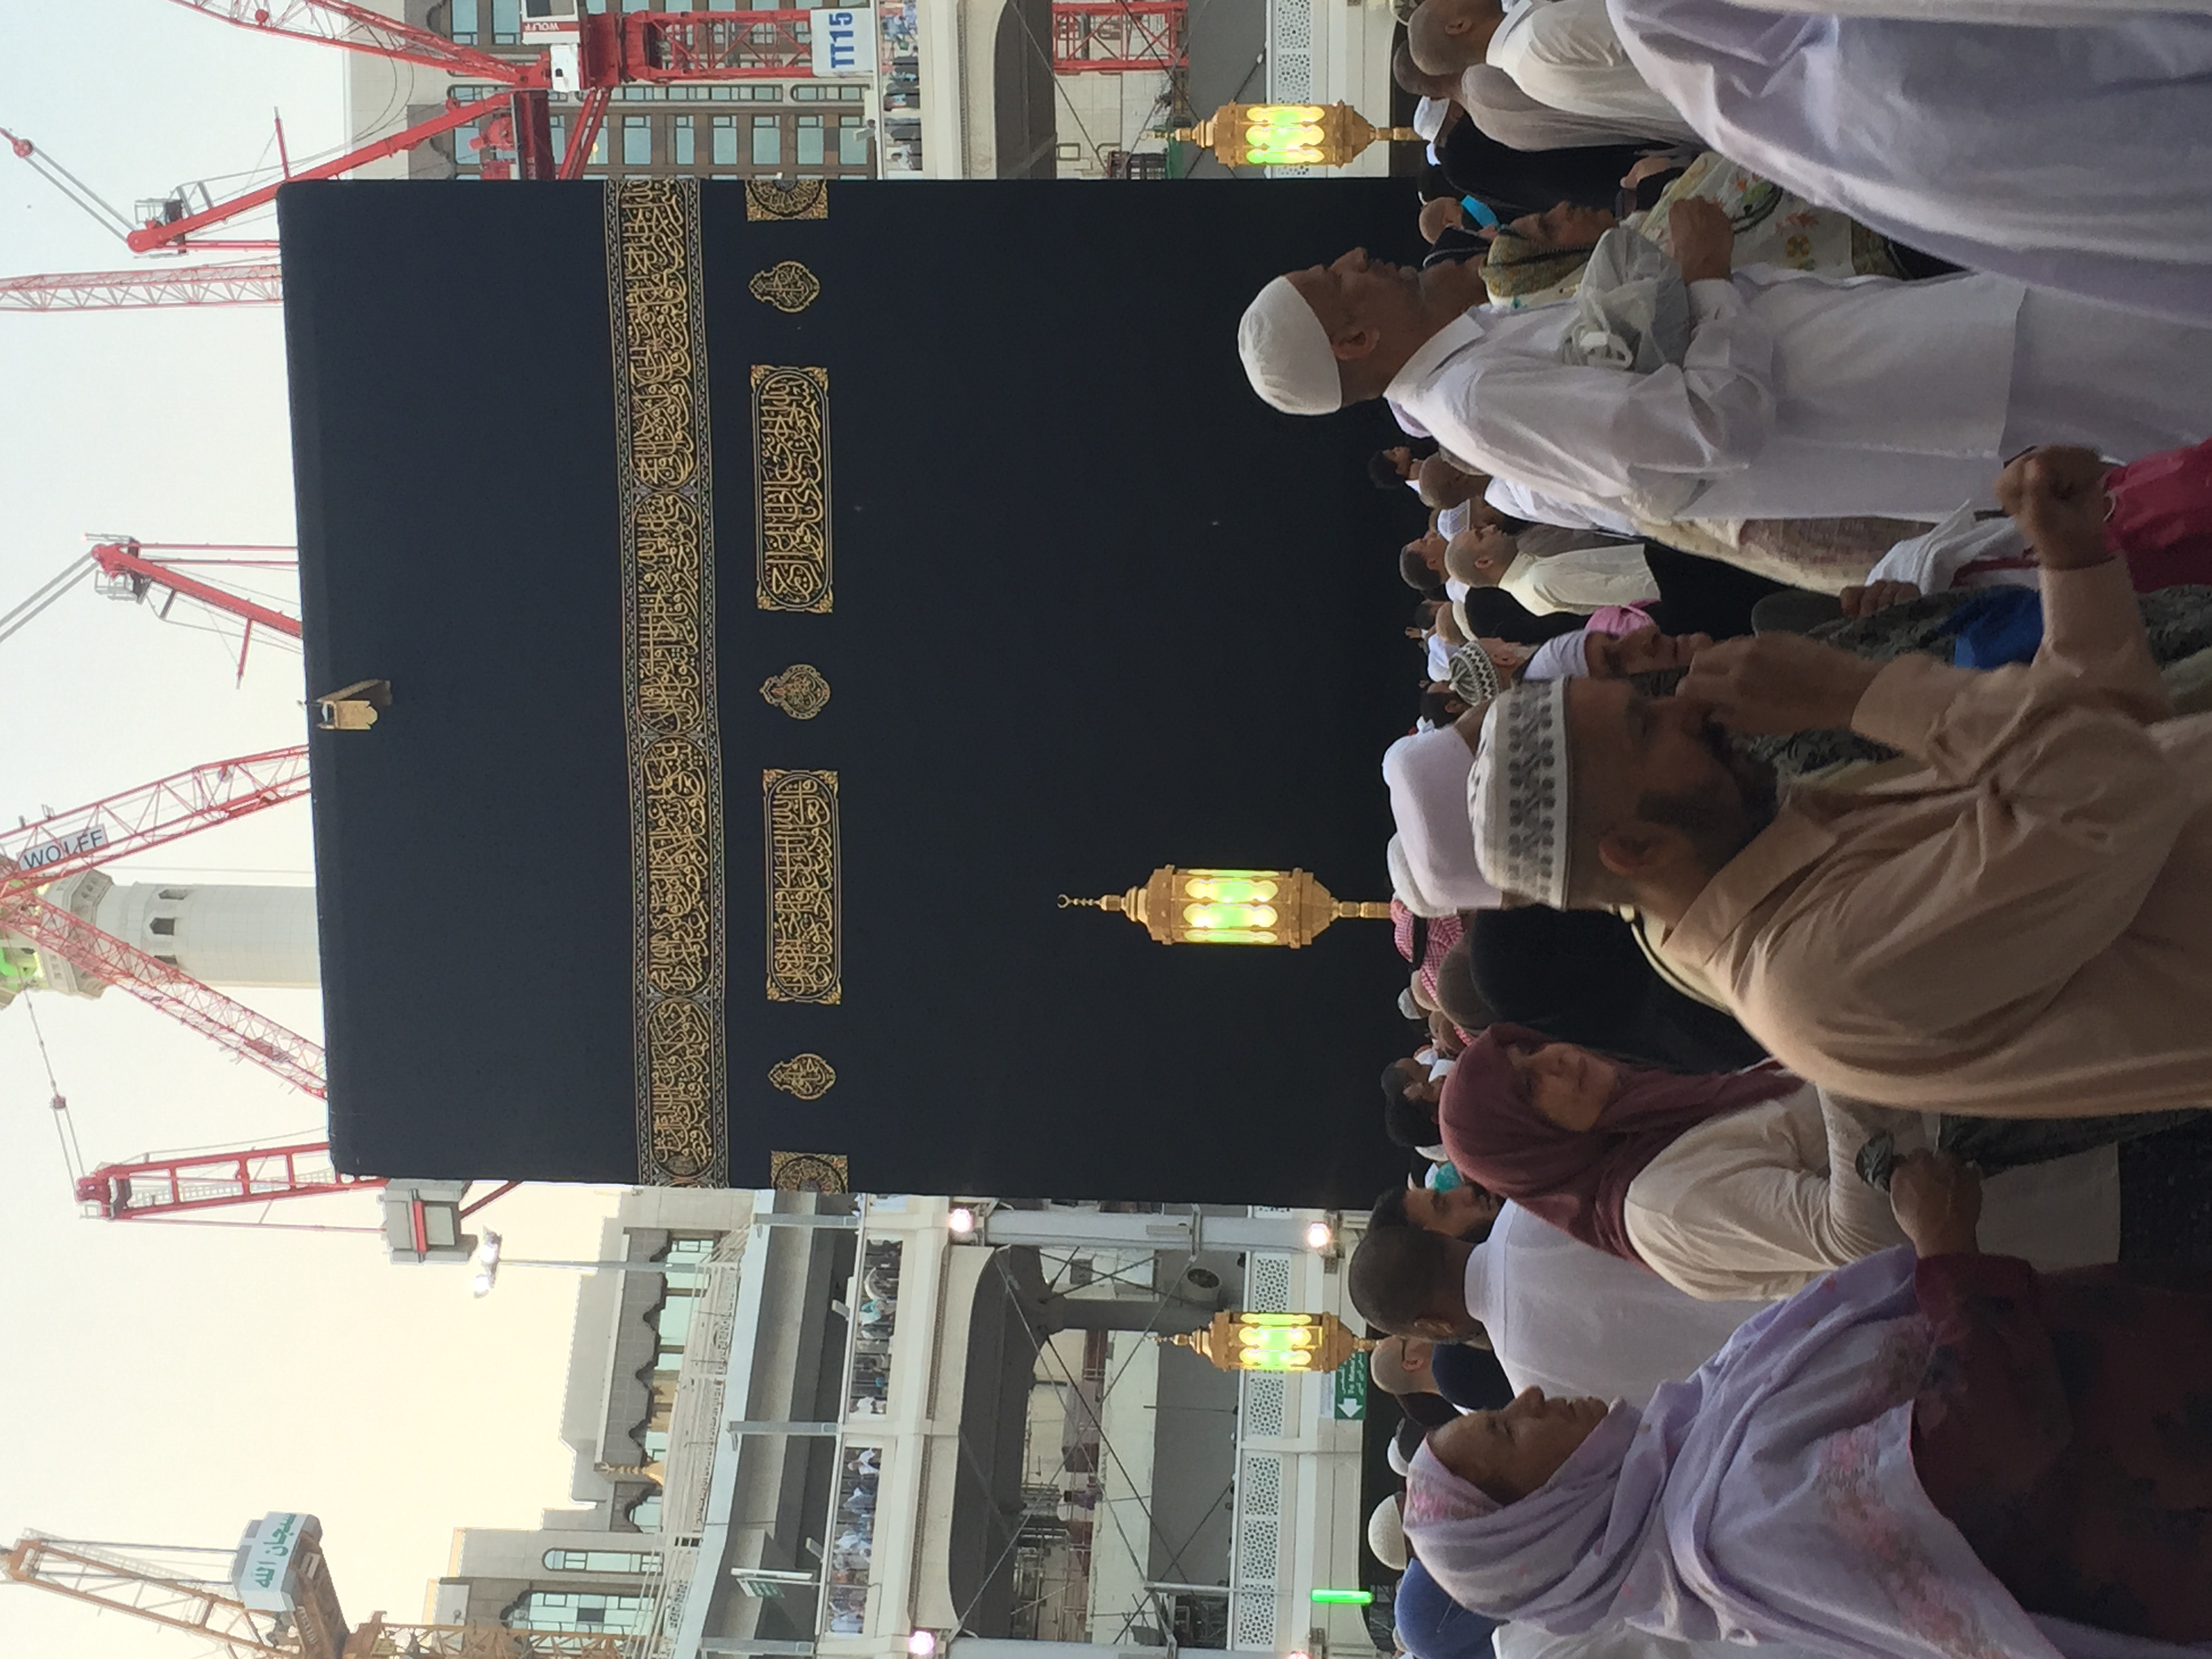 Kaaba under construction